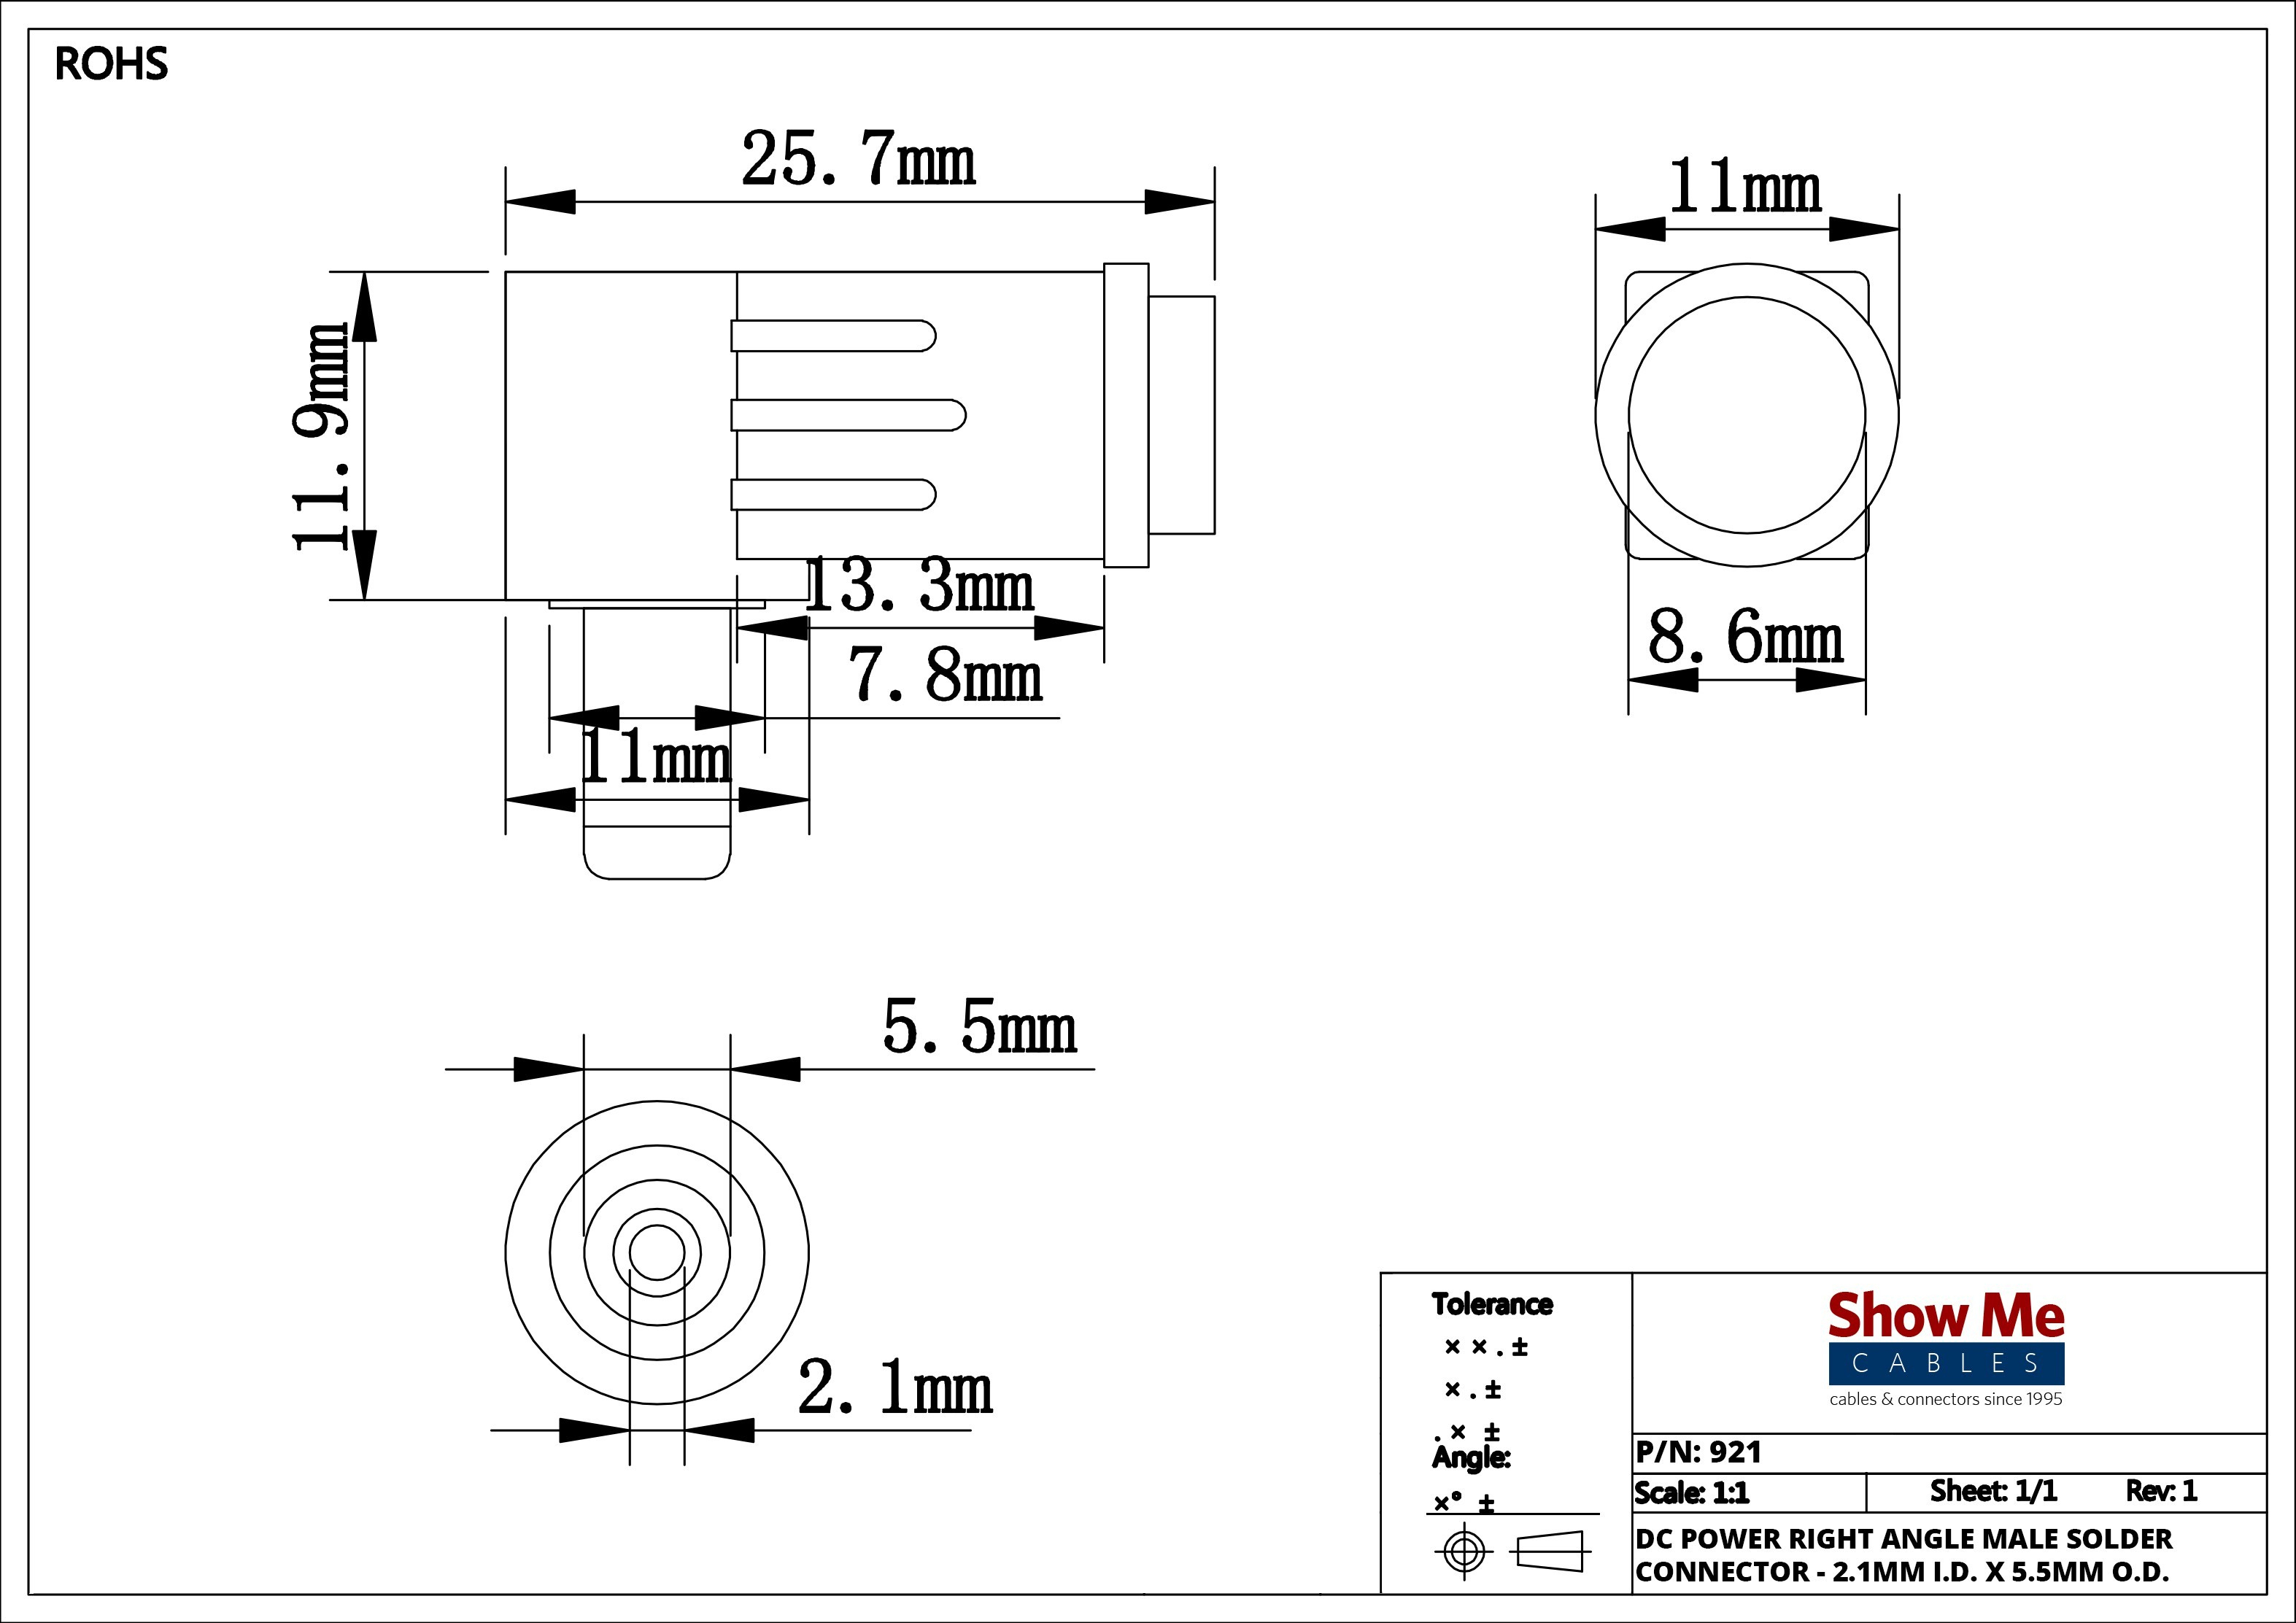 7 Prong Trailer Wiring Diagram Download | Wiring Diagram Sample - 7 Prong Trailer Wiring Diagram